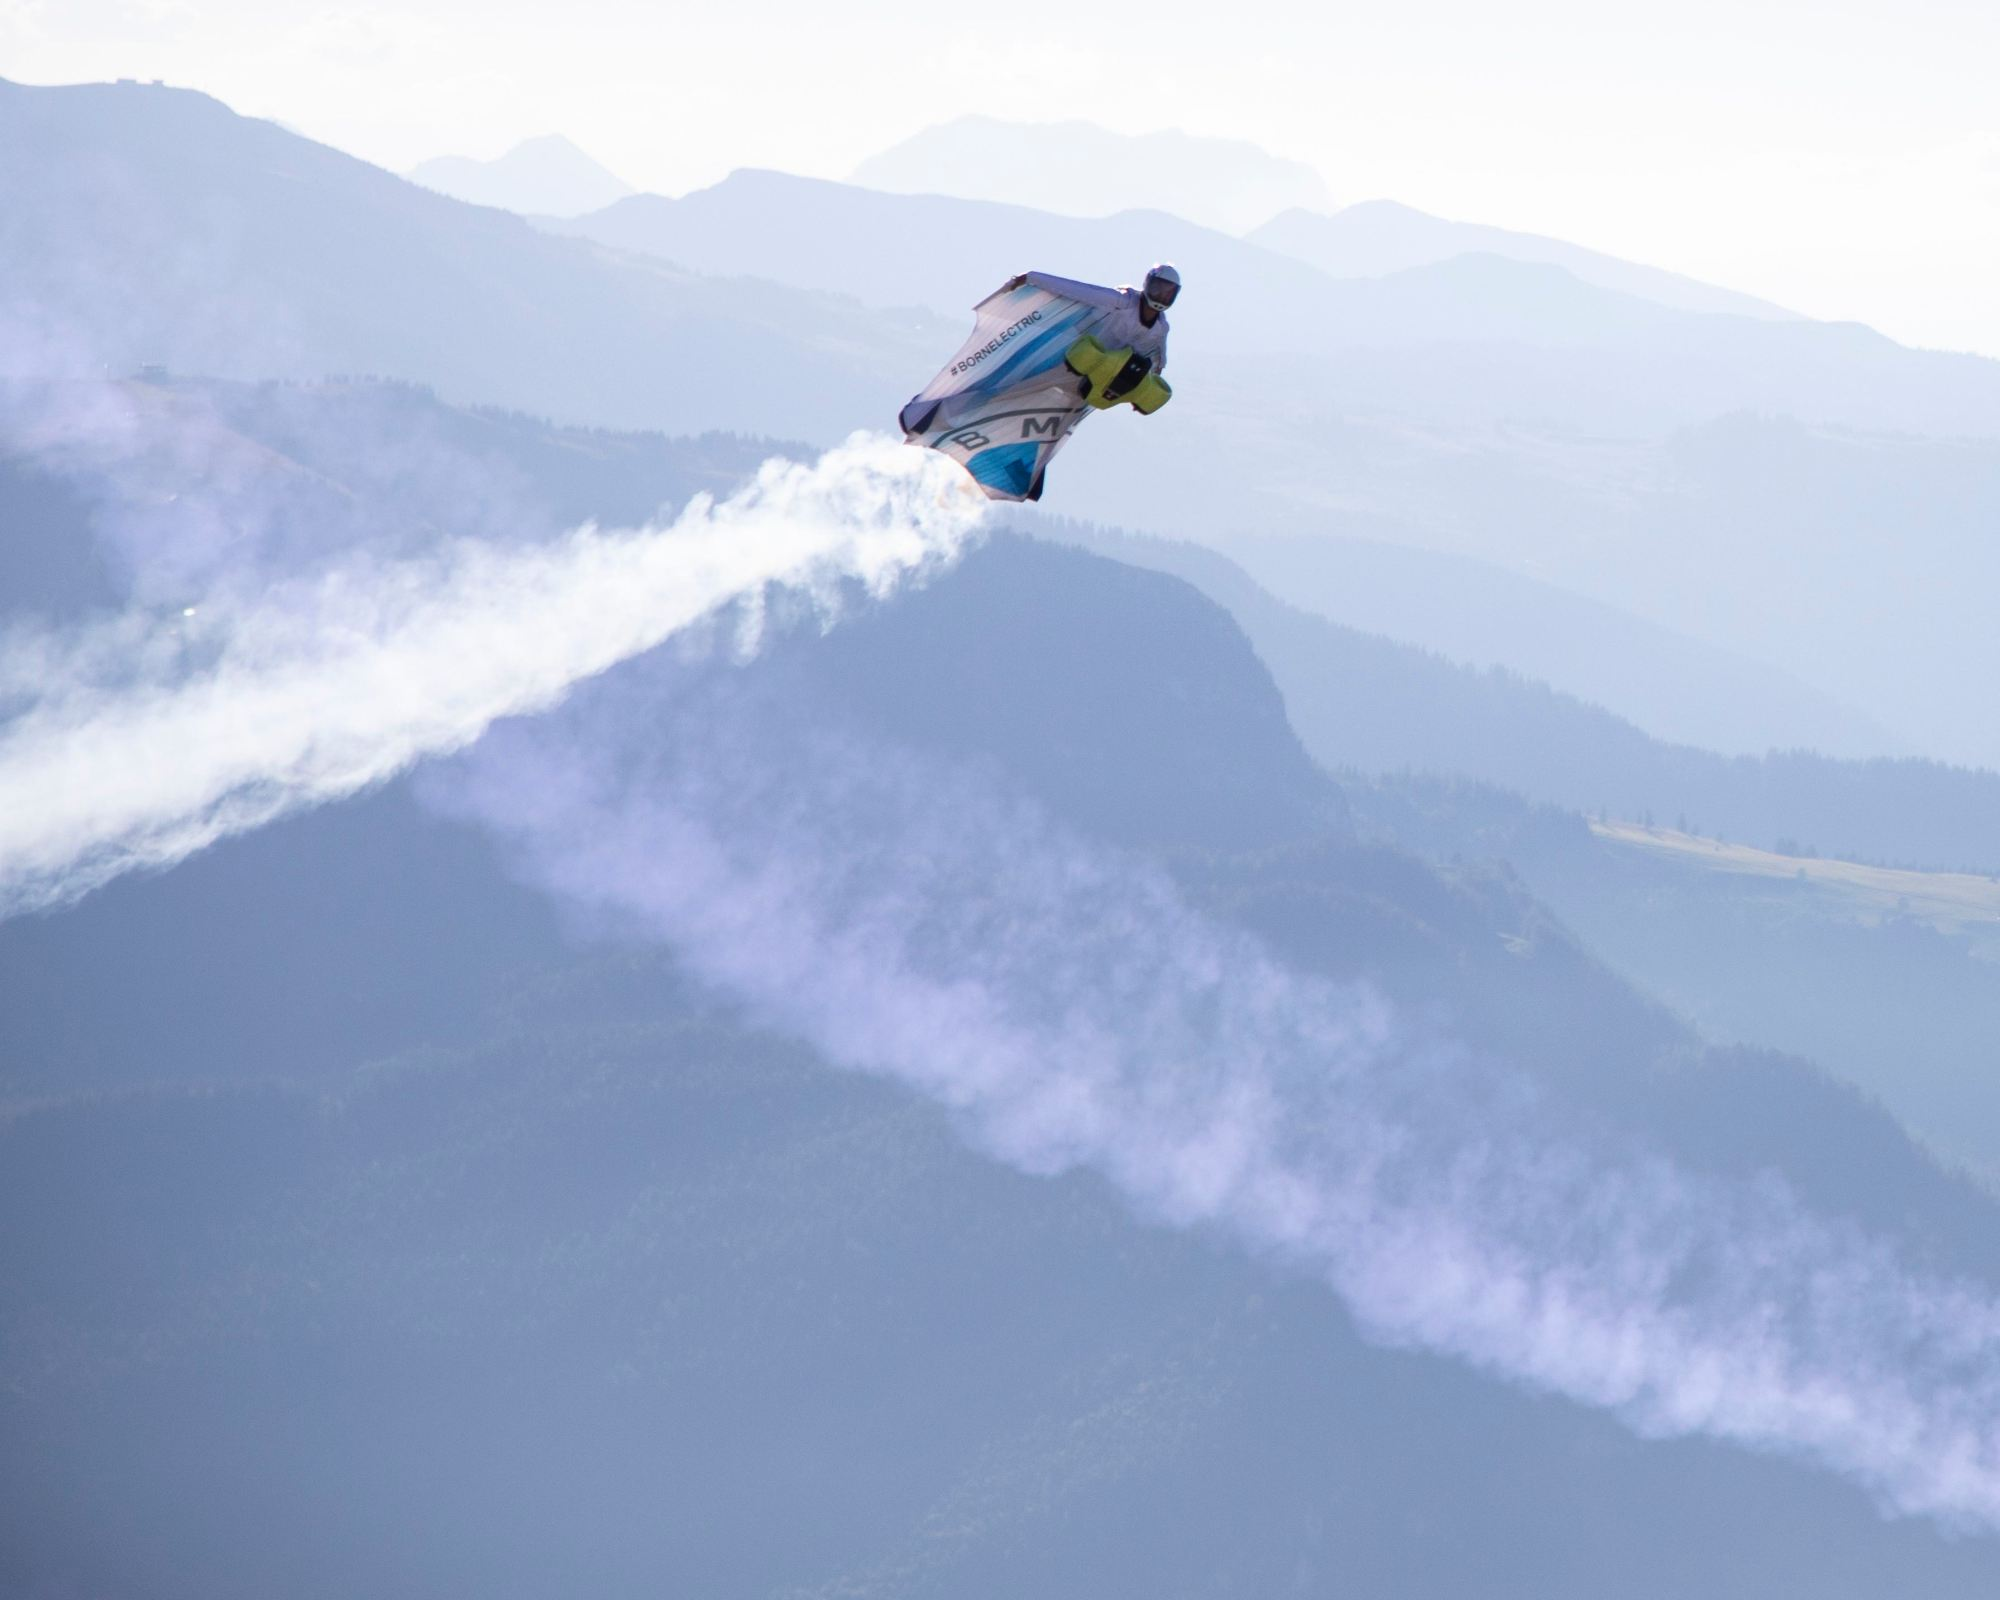 Wingsuitpilot Peter Salzmann, Picture by Timeline Production